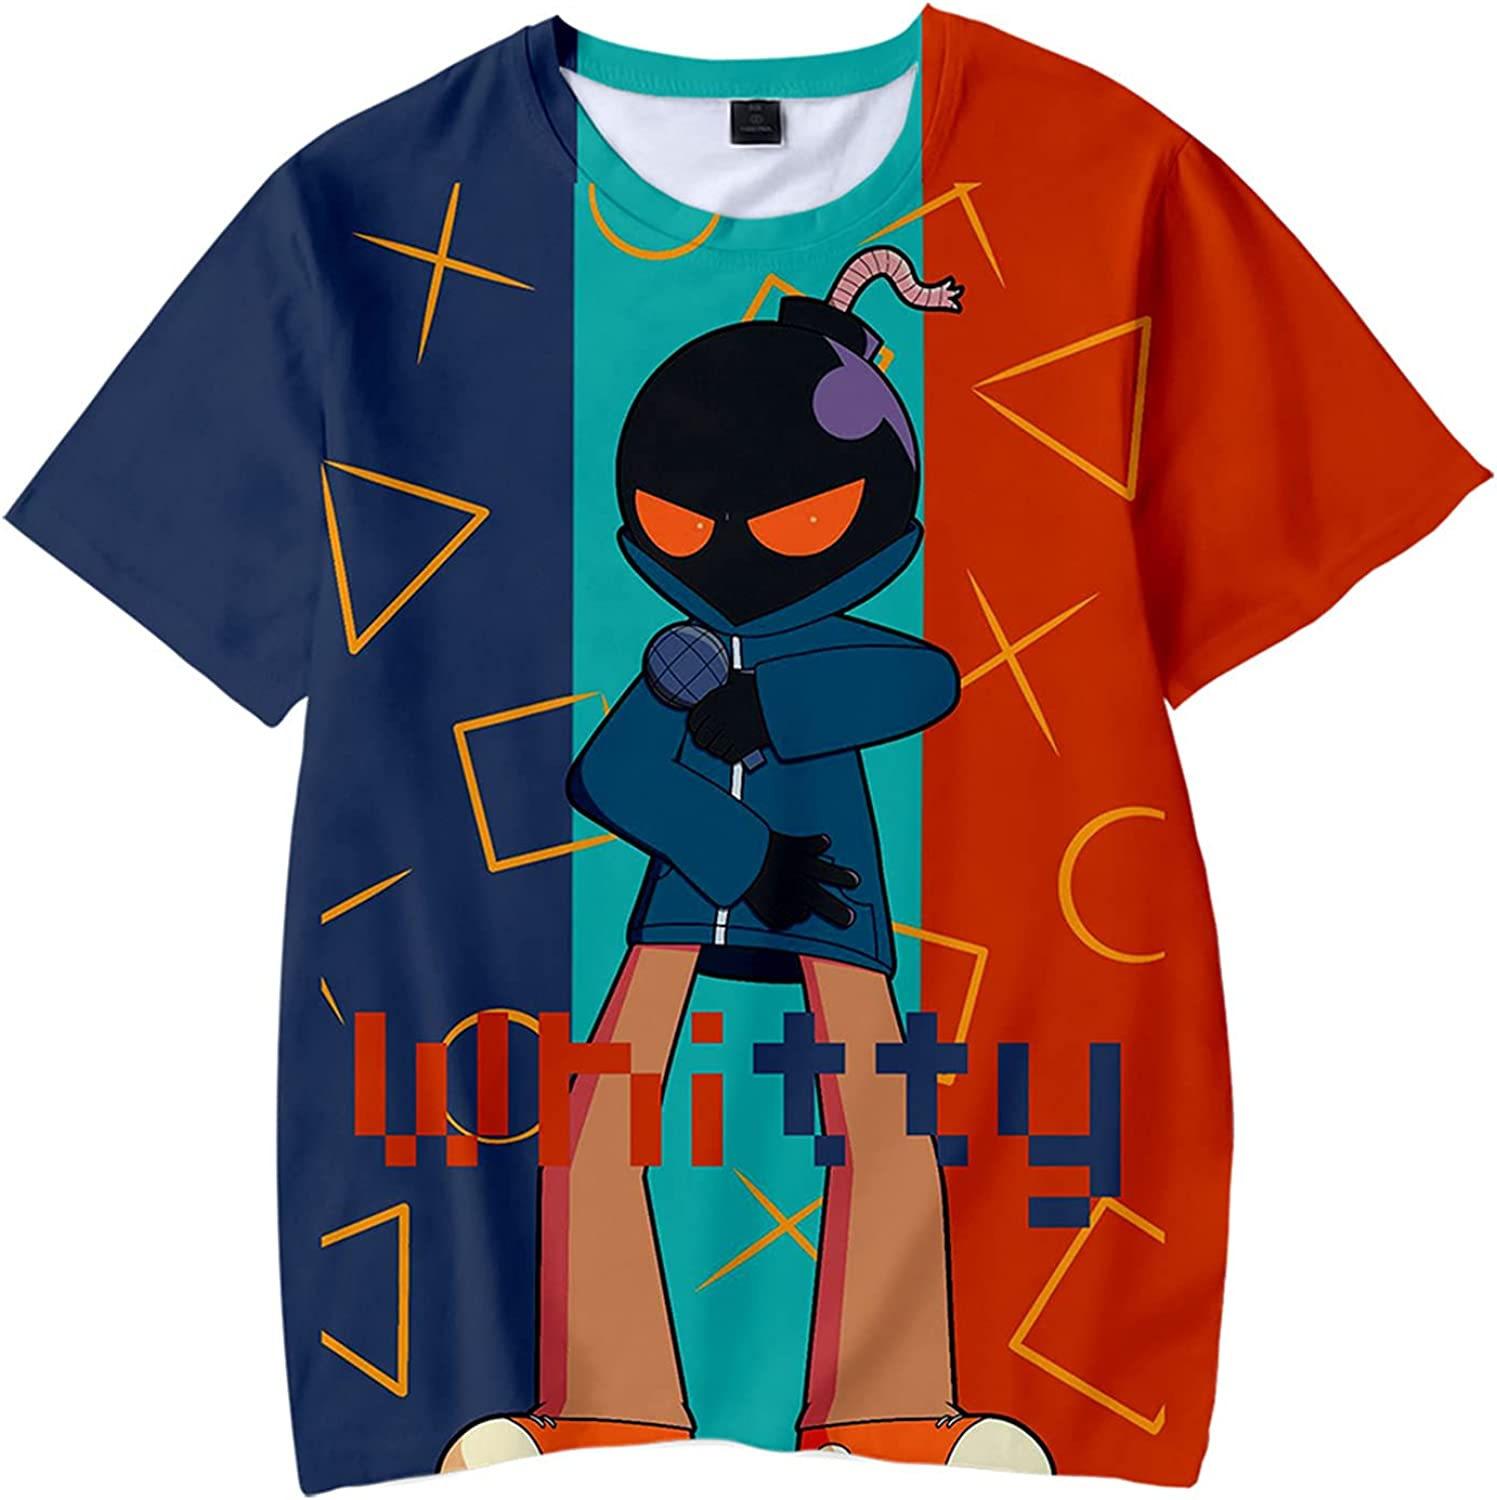 Friday Night Funkin Shirt for Boys and Girls Teenage 3D Printed Short Sleeved T Shirt Loose Round Neck Top